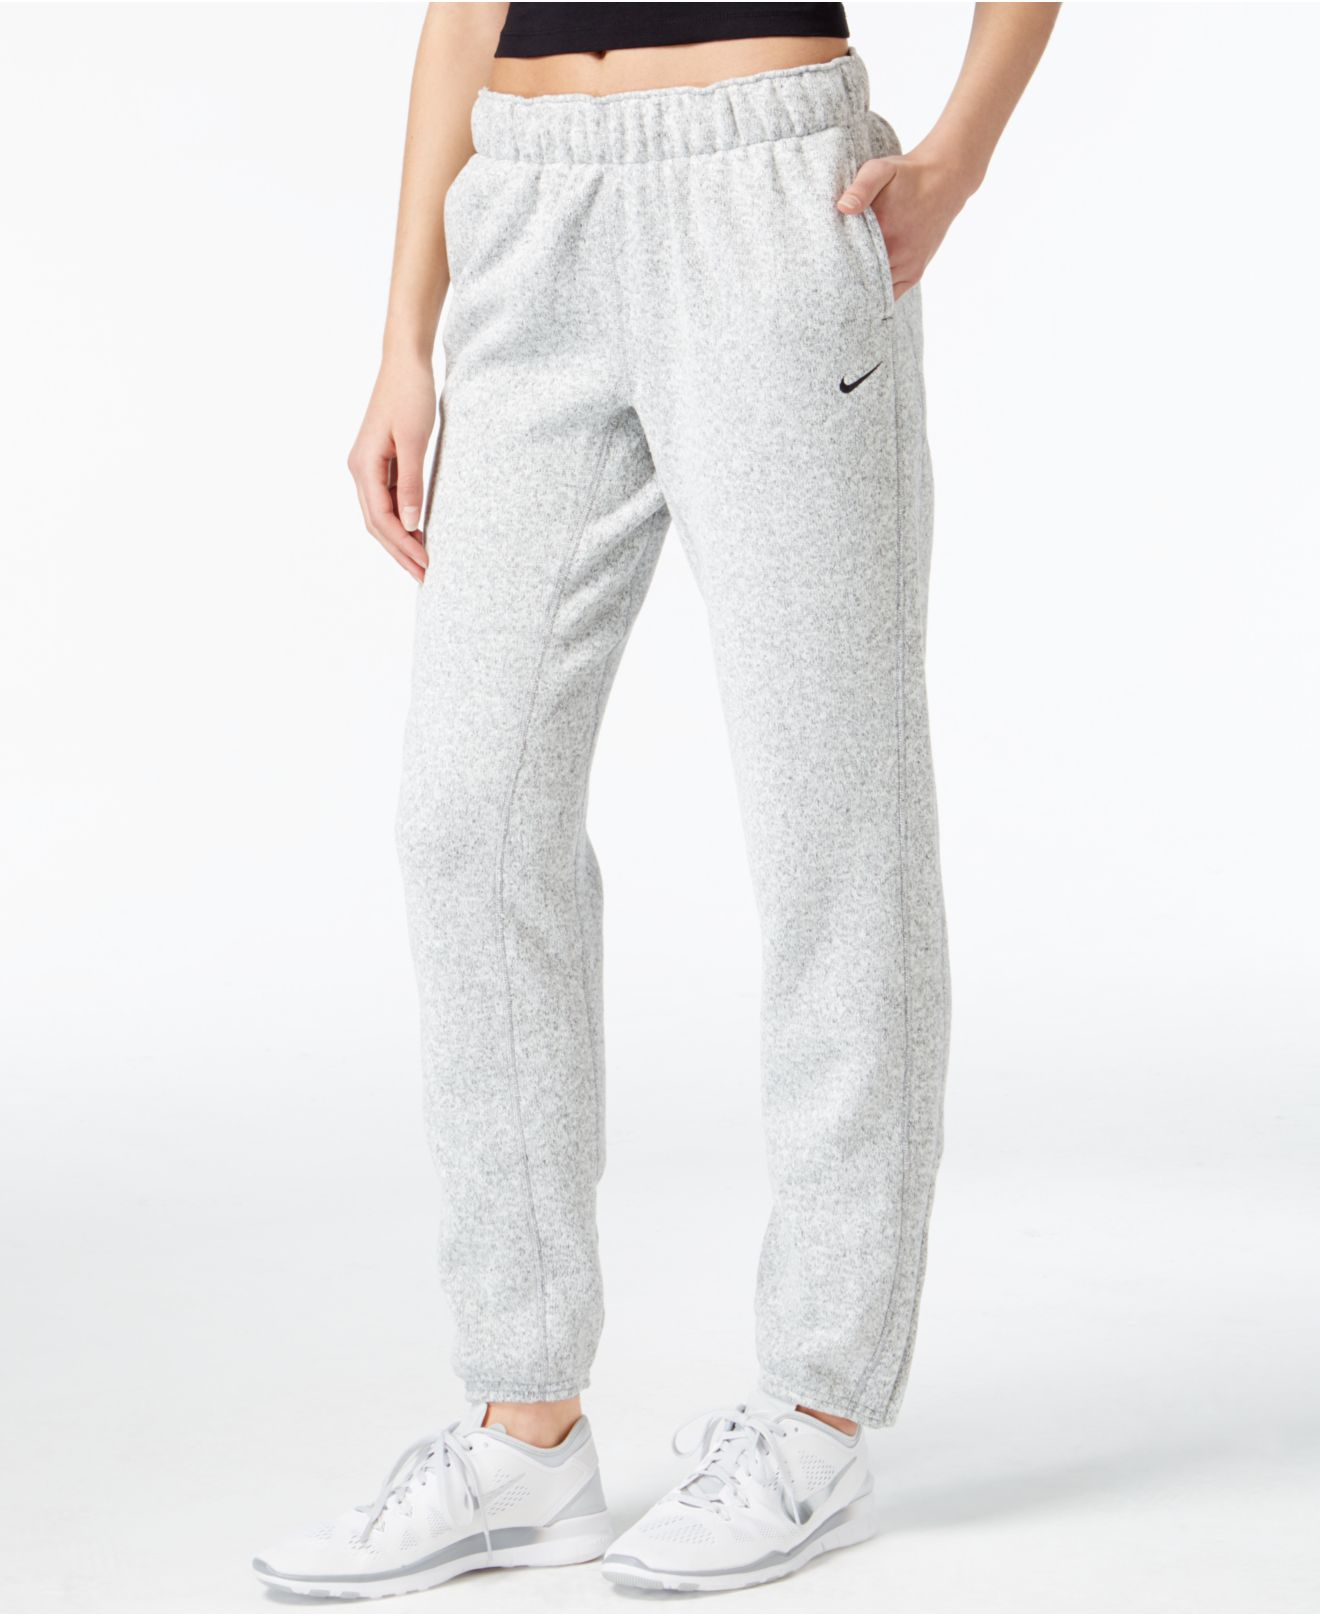 Nike Hypernatural Therma-fit Sweat Pants in Gray | Lyst